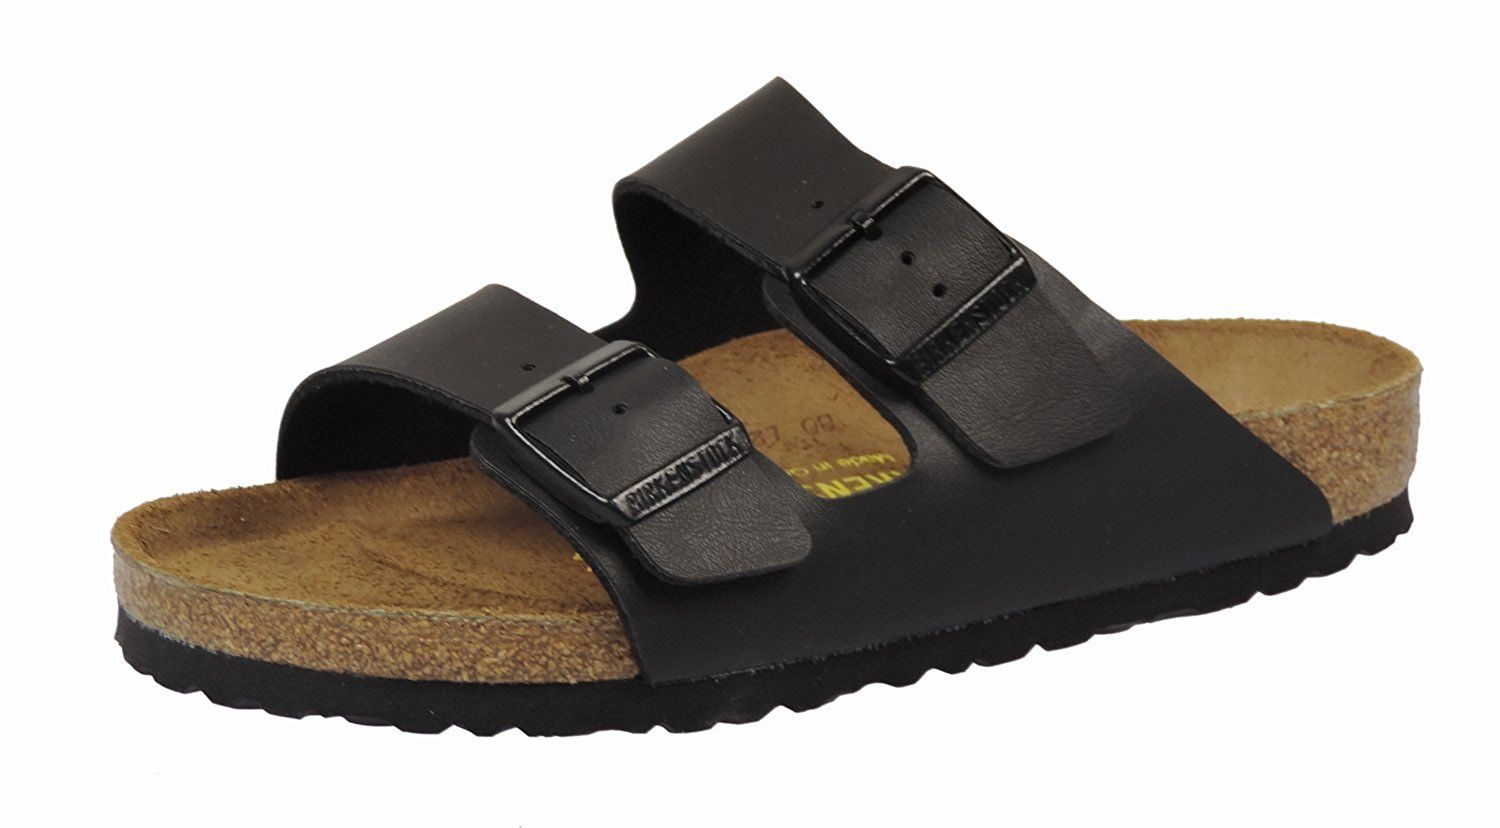 ad5b766a4282 Birkenstock Men s Arizona SF 2-Strap Soft Cork Footbed Sandal     See this  great image - Birkenstock sandals